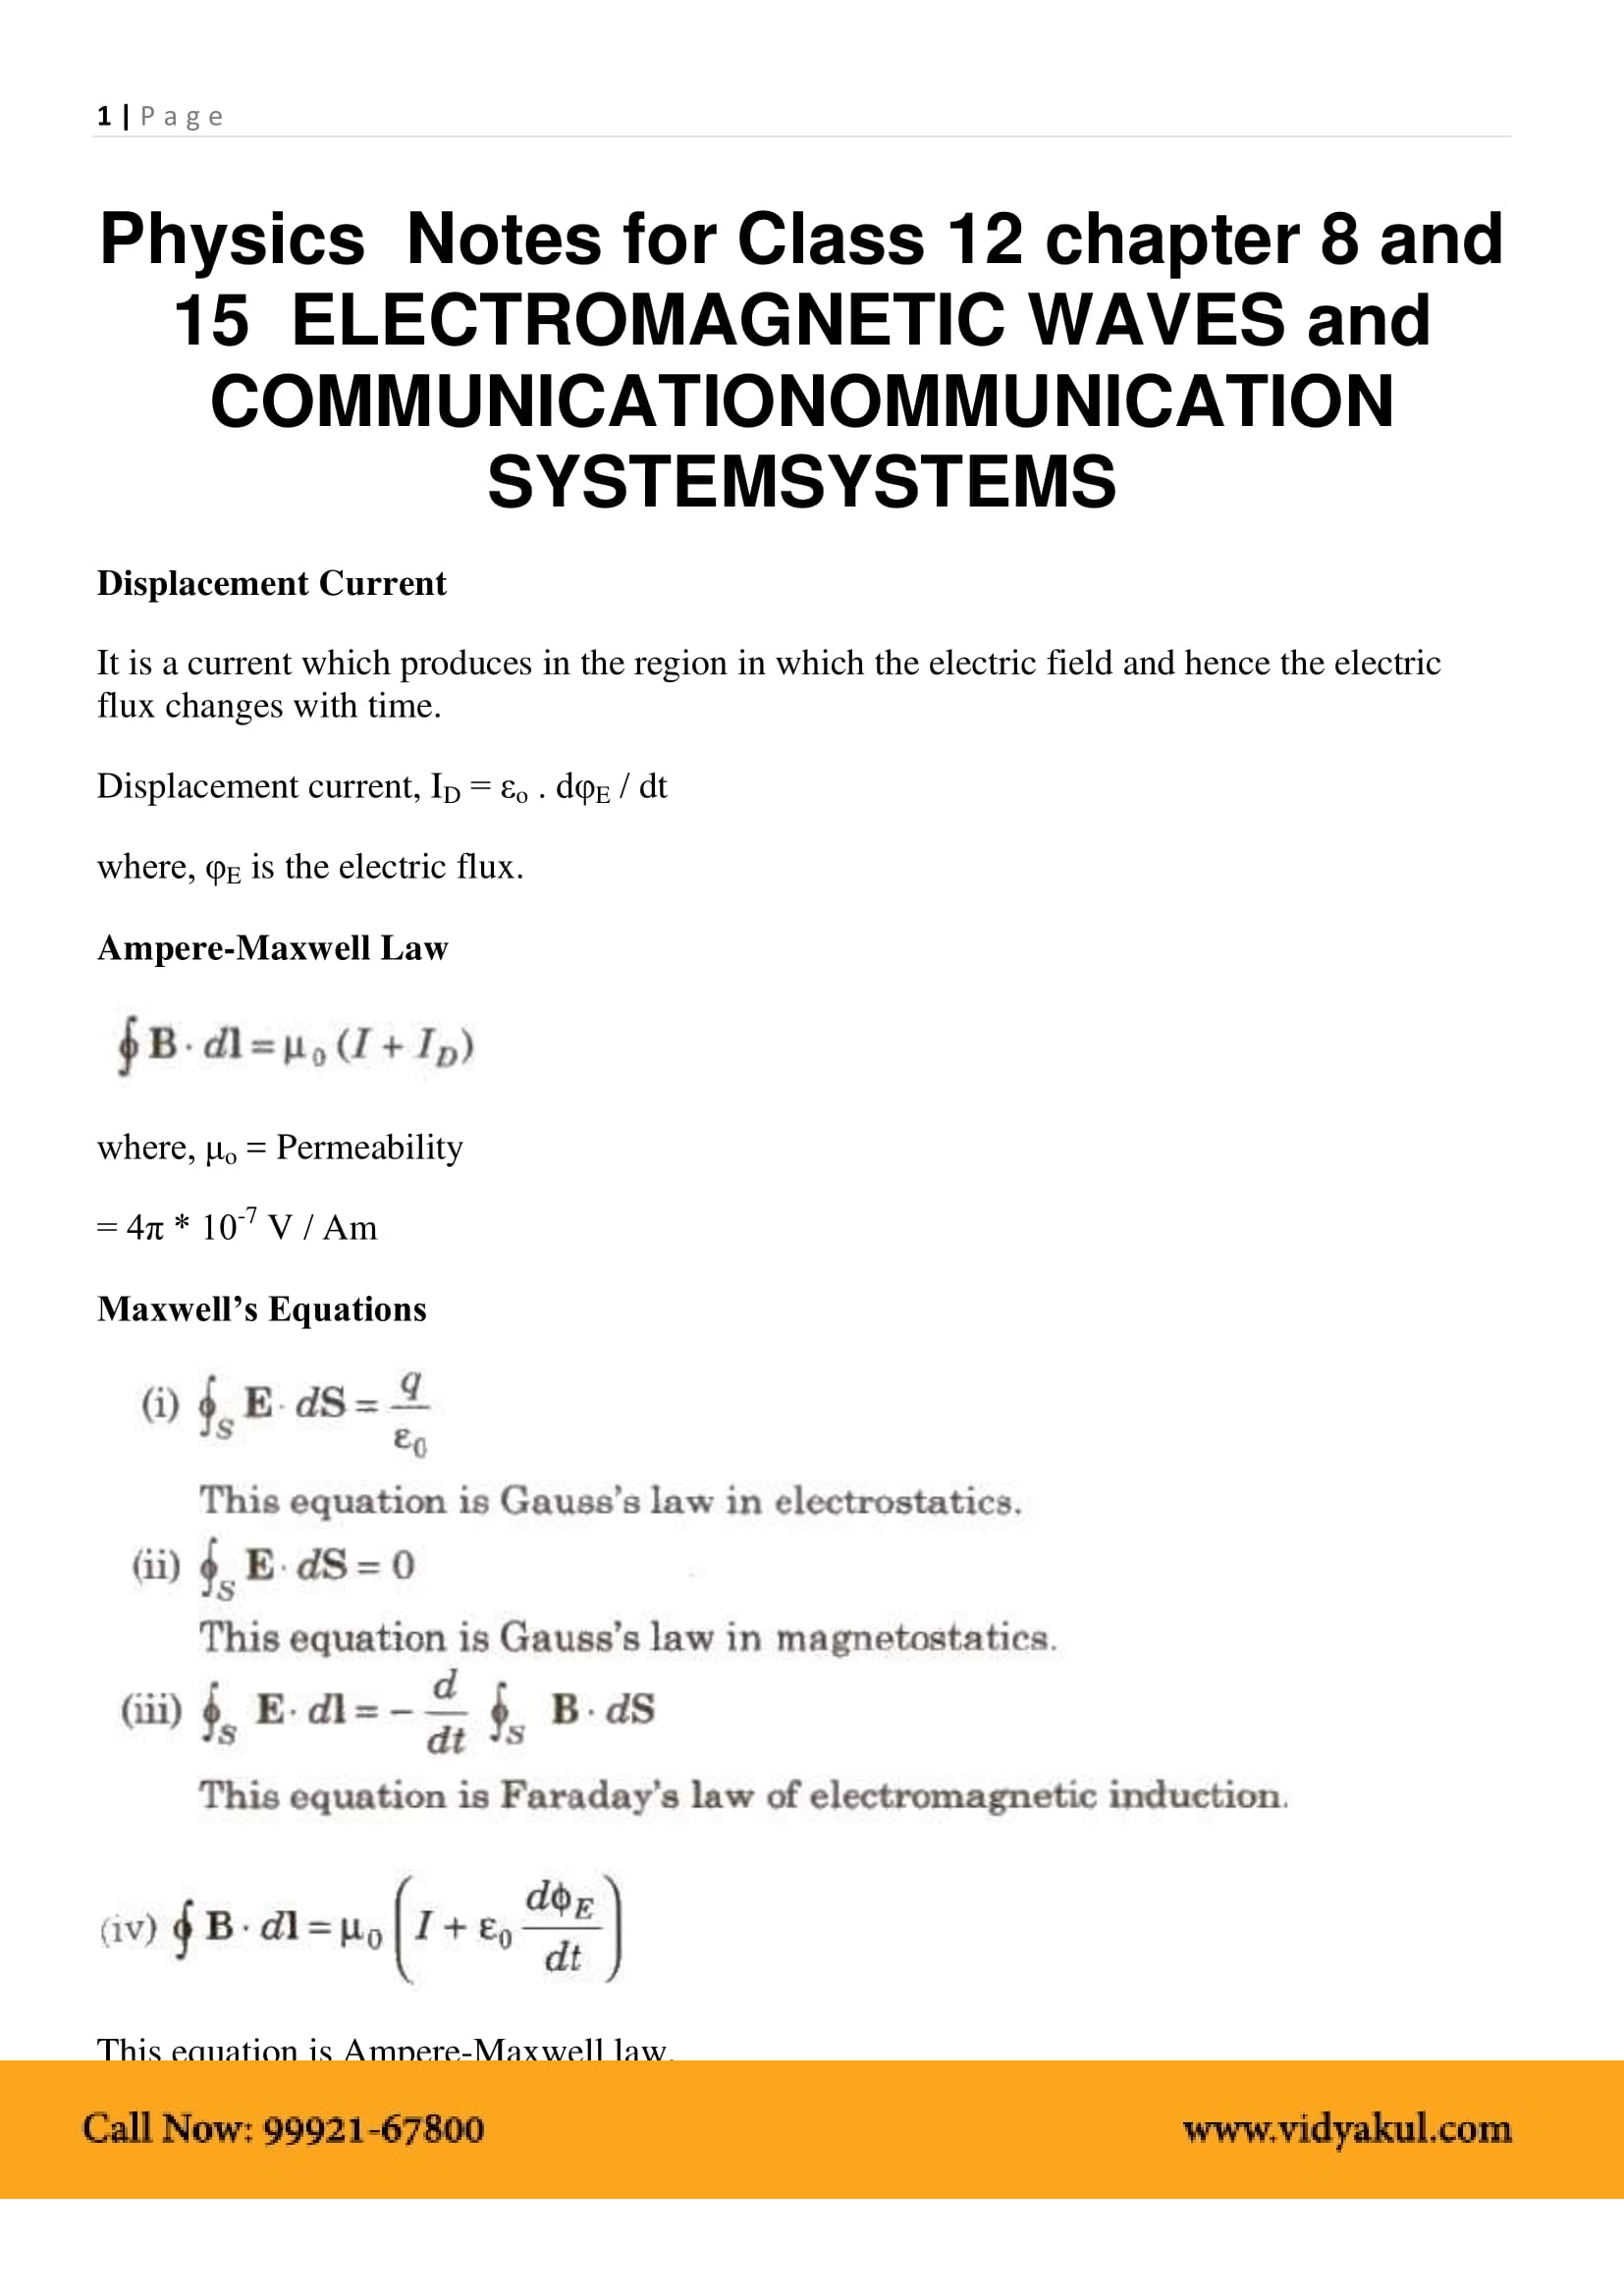 Communication Systems Class 12 Notes | Vidyakul